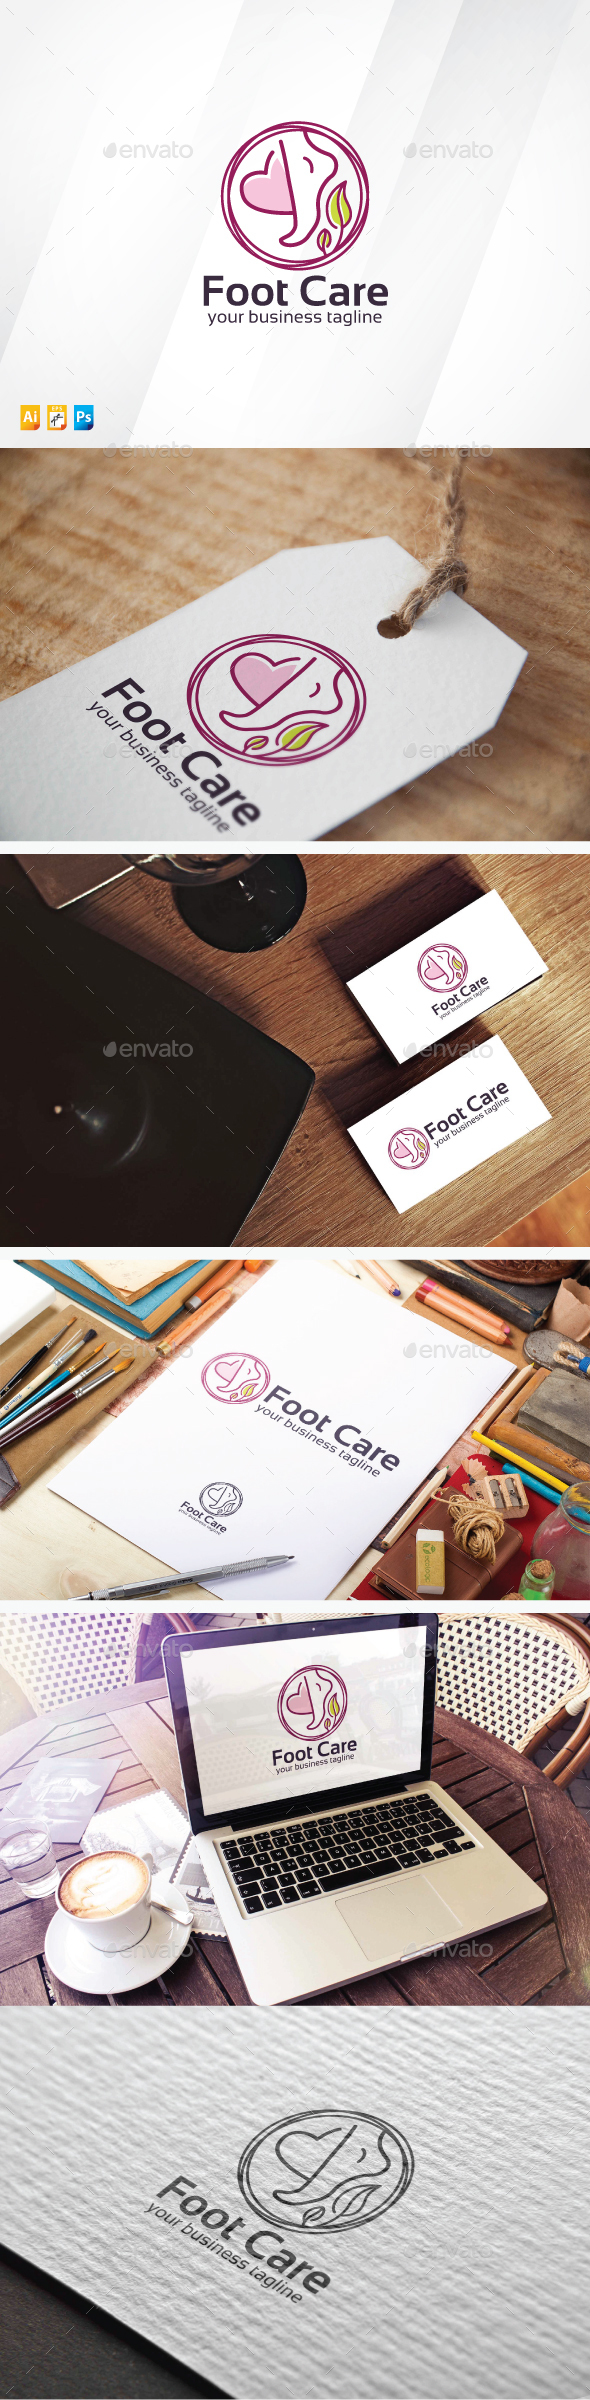 Foot Care - Humans Logo Templates